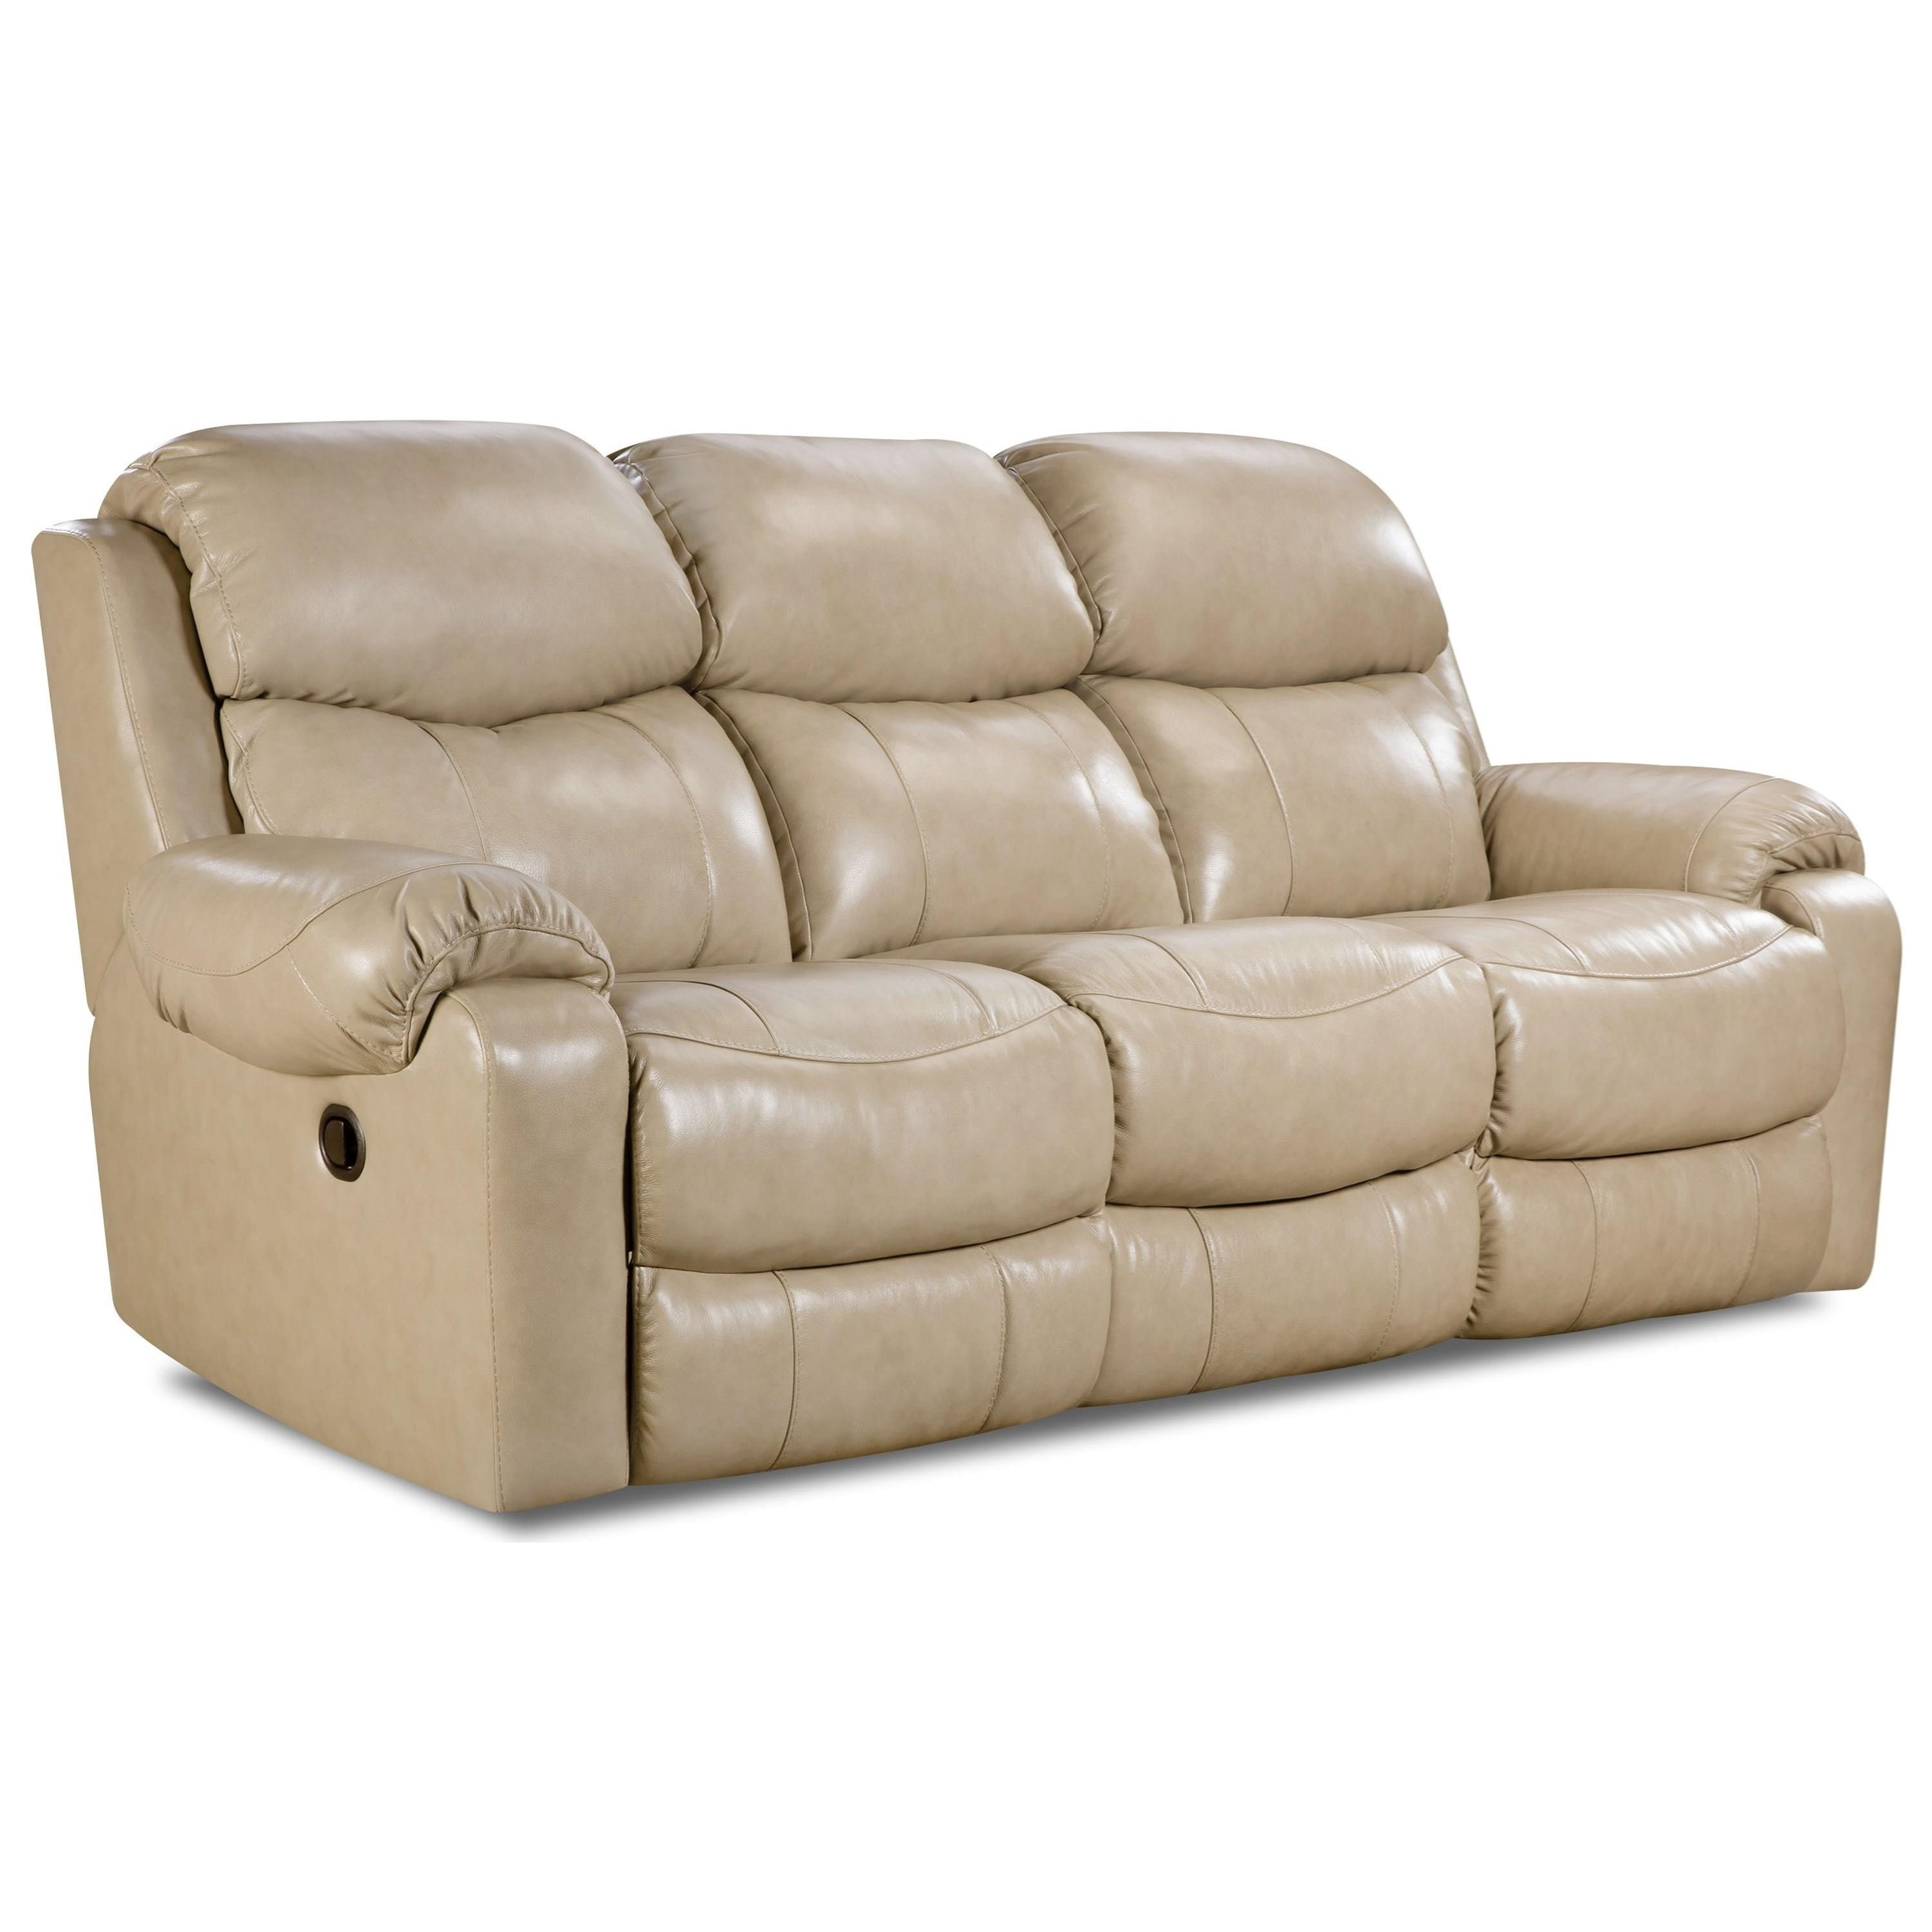 HomeStretch 135 Collection Double Reclining Sofa - Item Number: 135-30-10